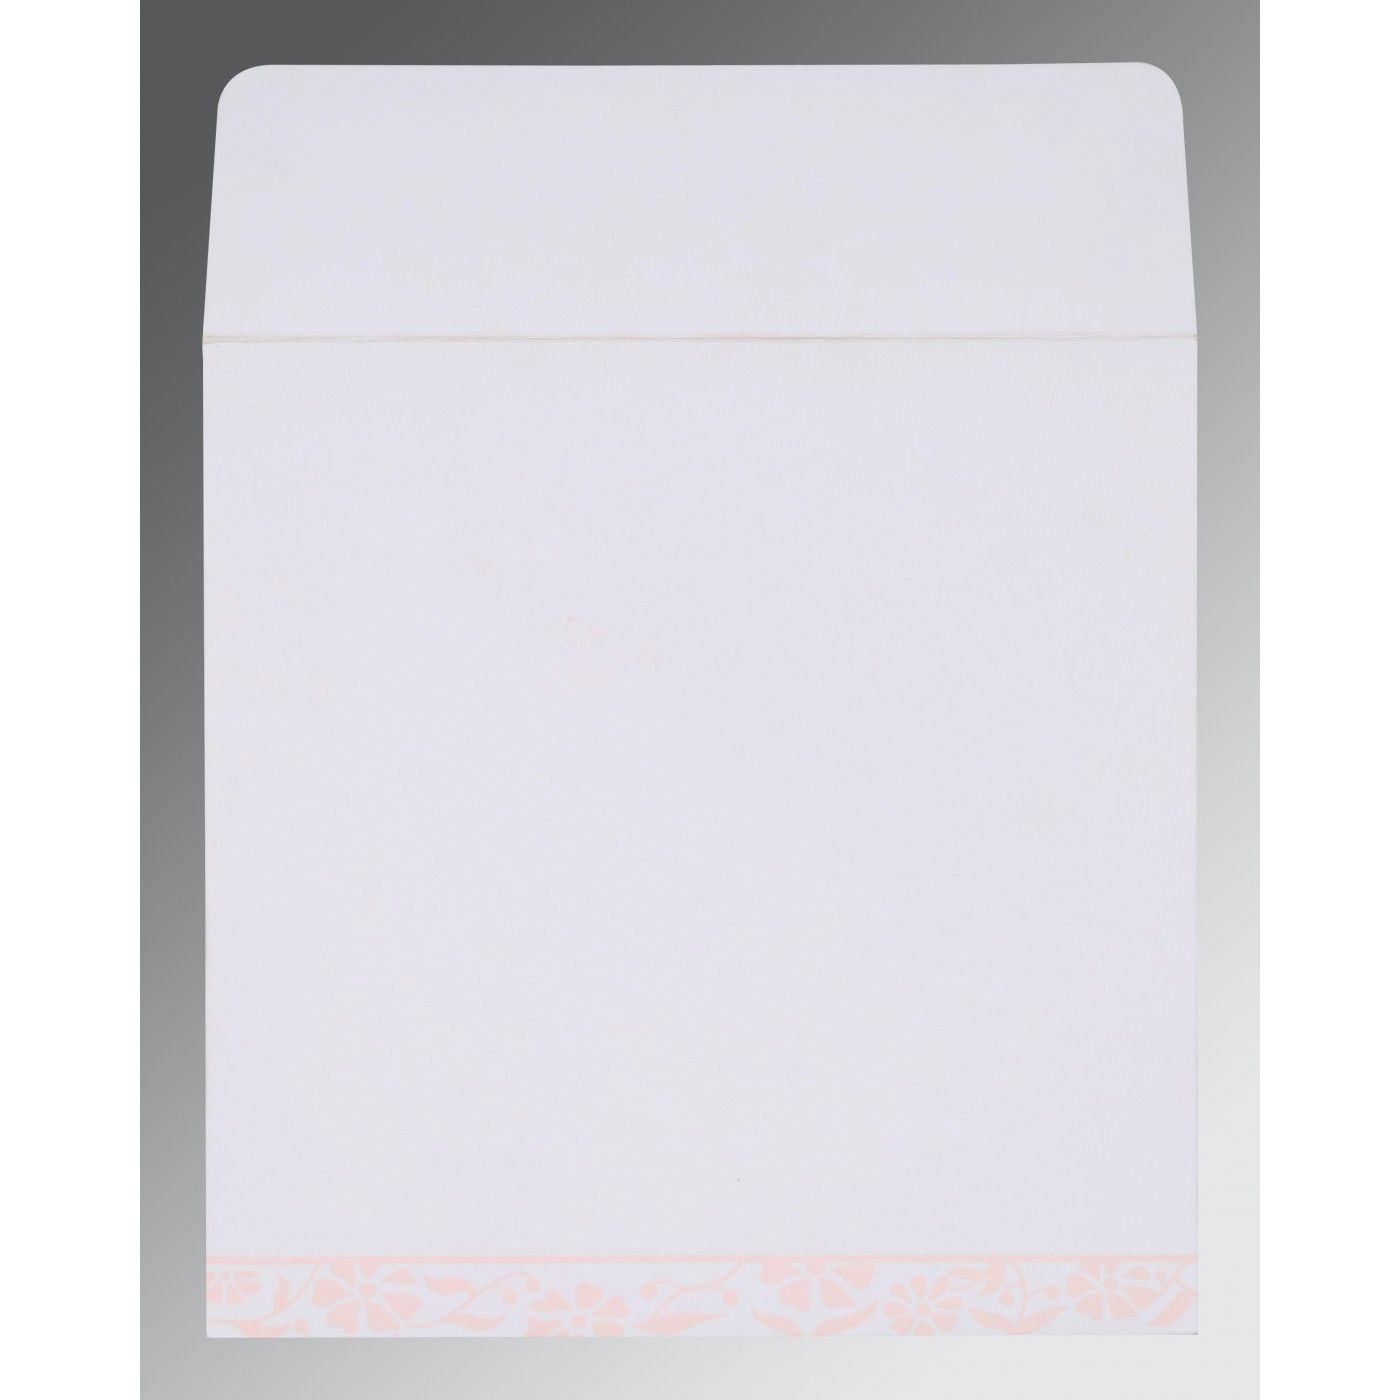 OFF-WHITE MATTE FLORAL THEMED - SCREEN PRINTED WEDDING CARD : CG-8222N - IndianWeddingCards